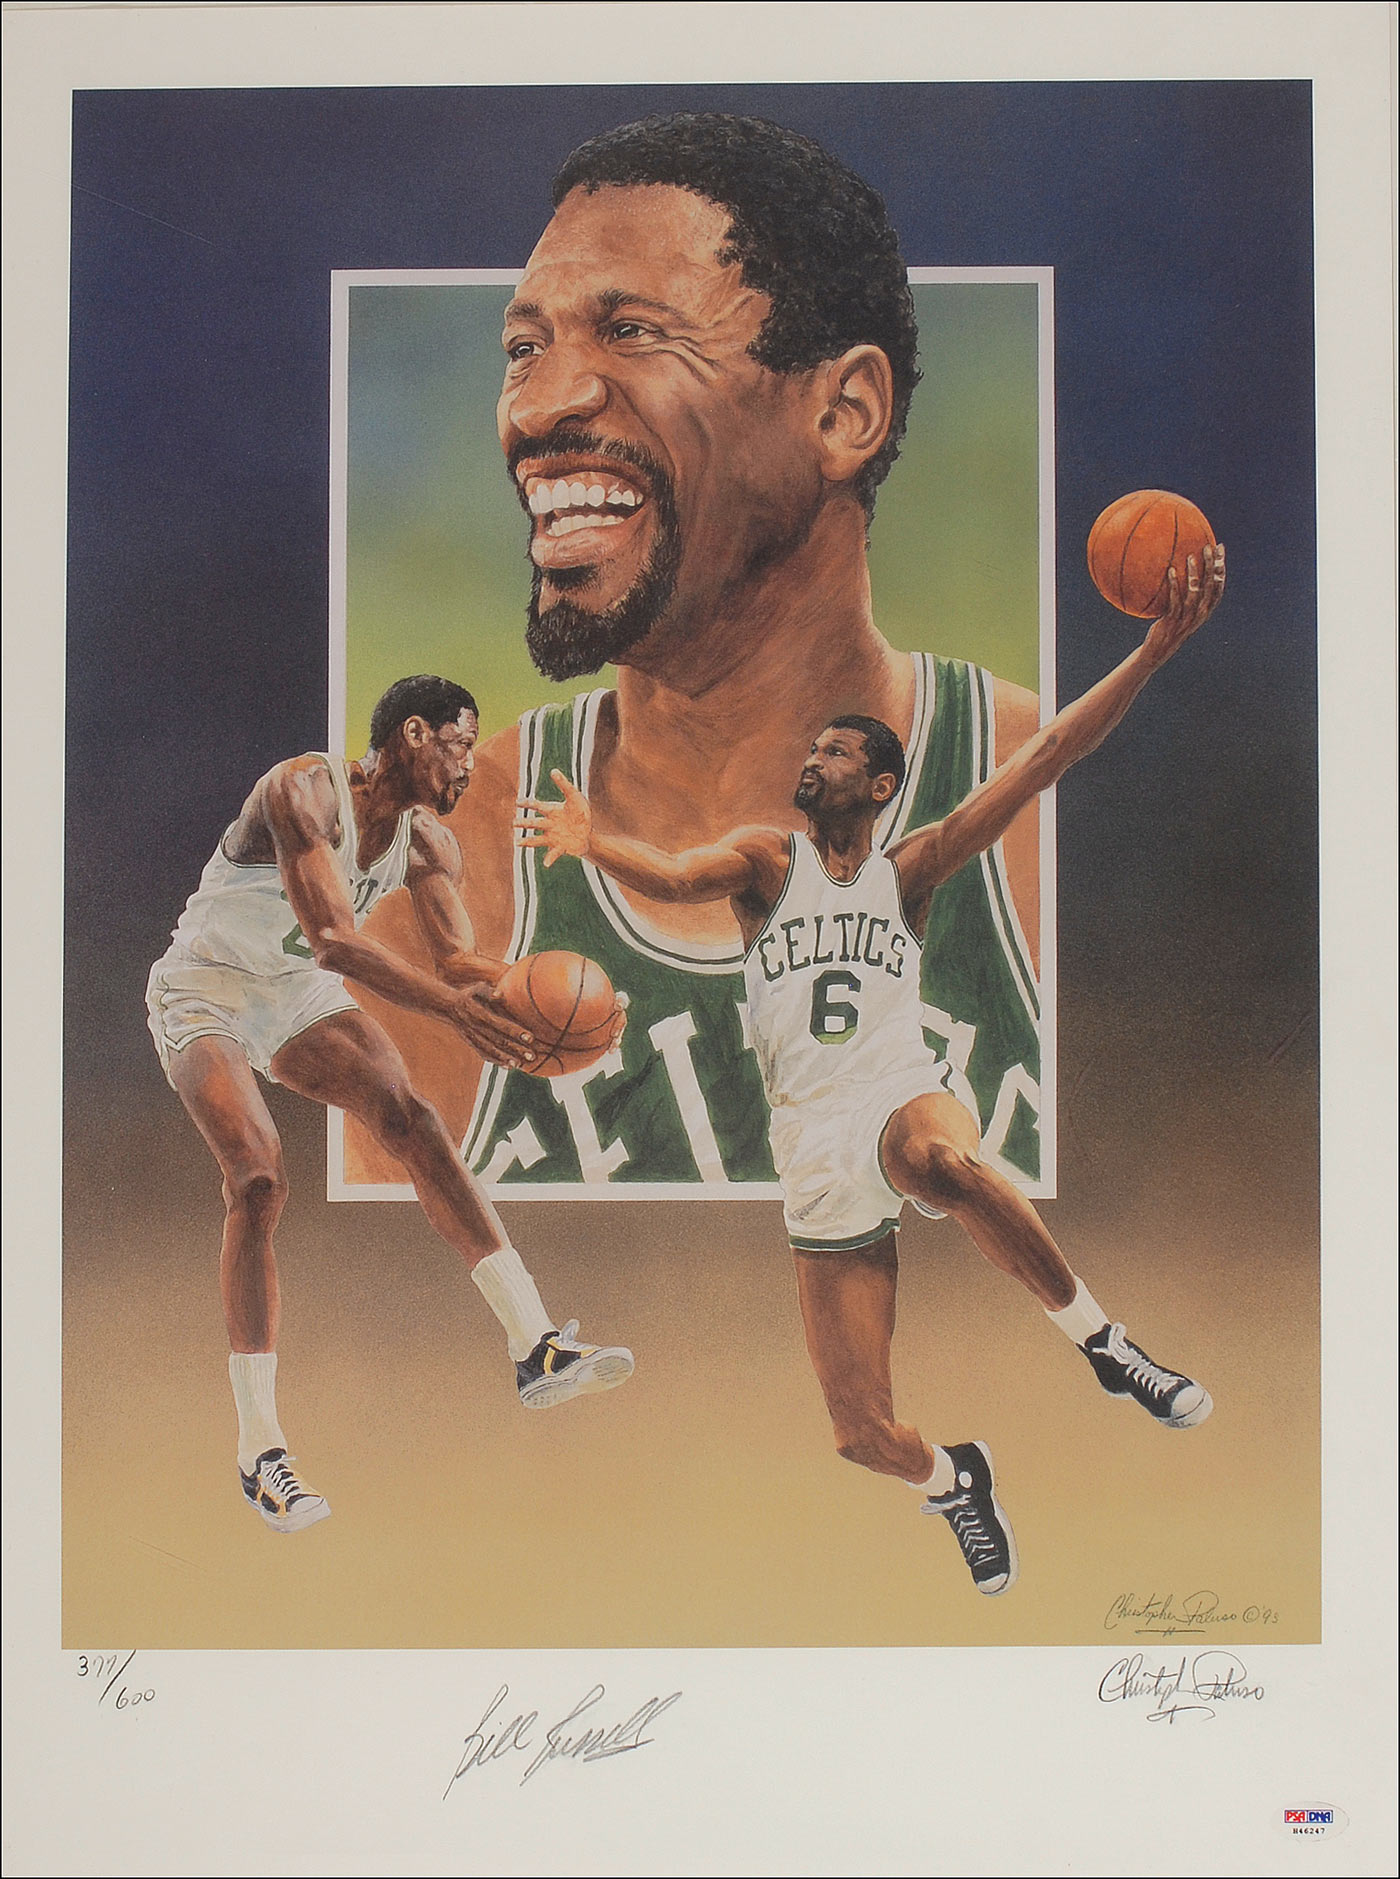 bill russell coloring pages - photo#49